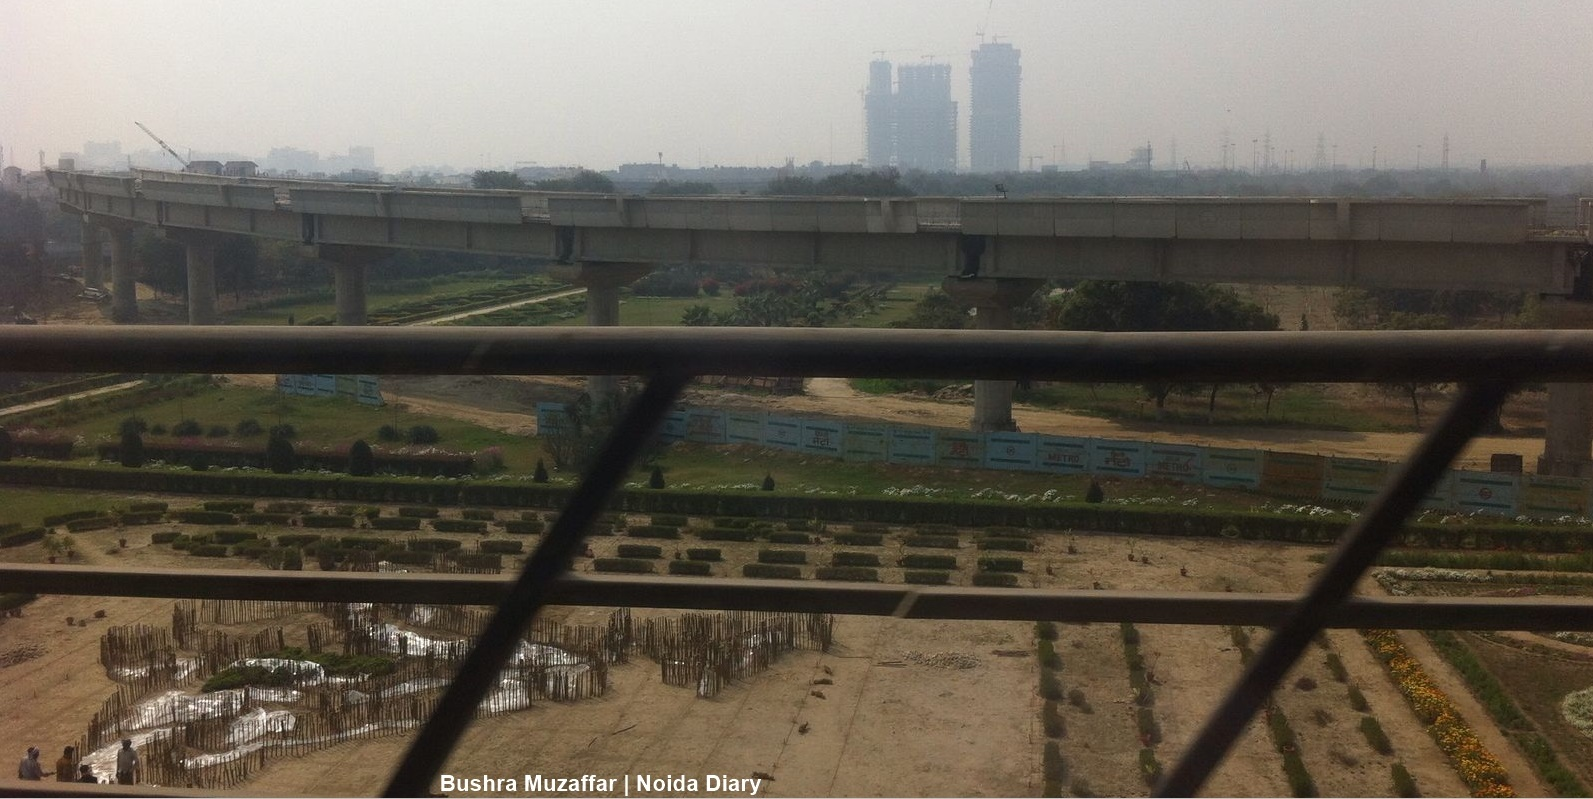 Infragrowth on a High Yet Law and Order a Concern in Noida